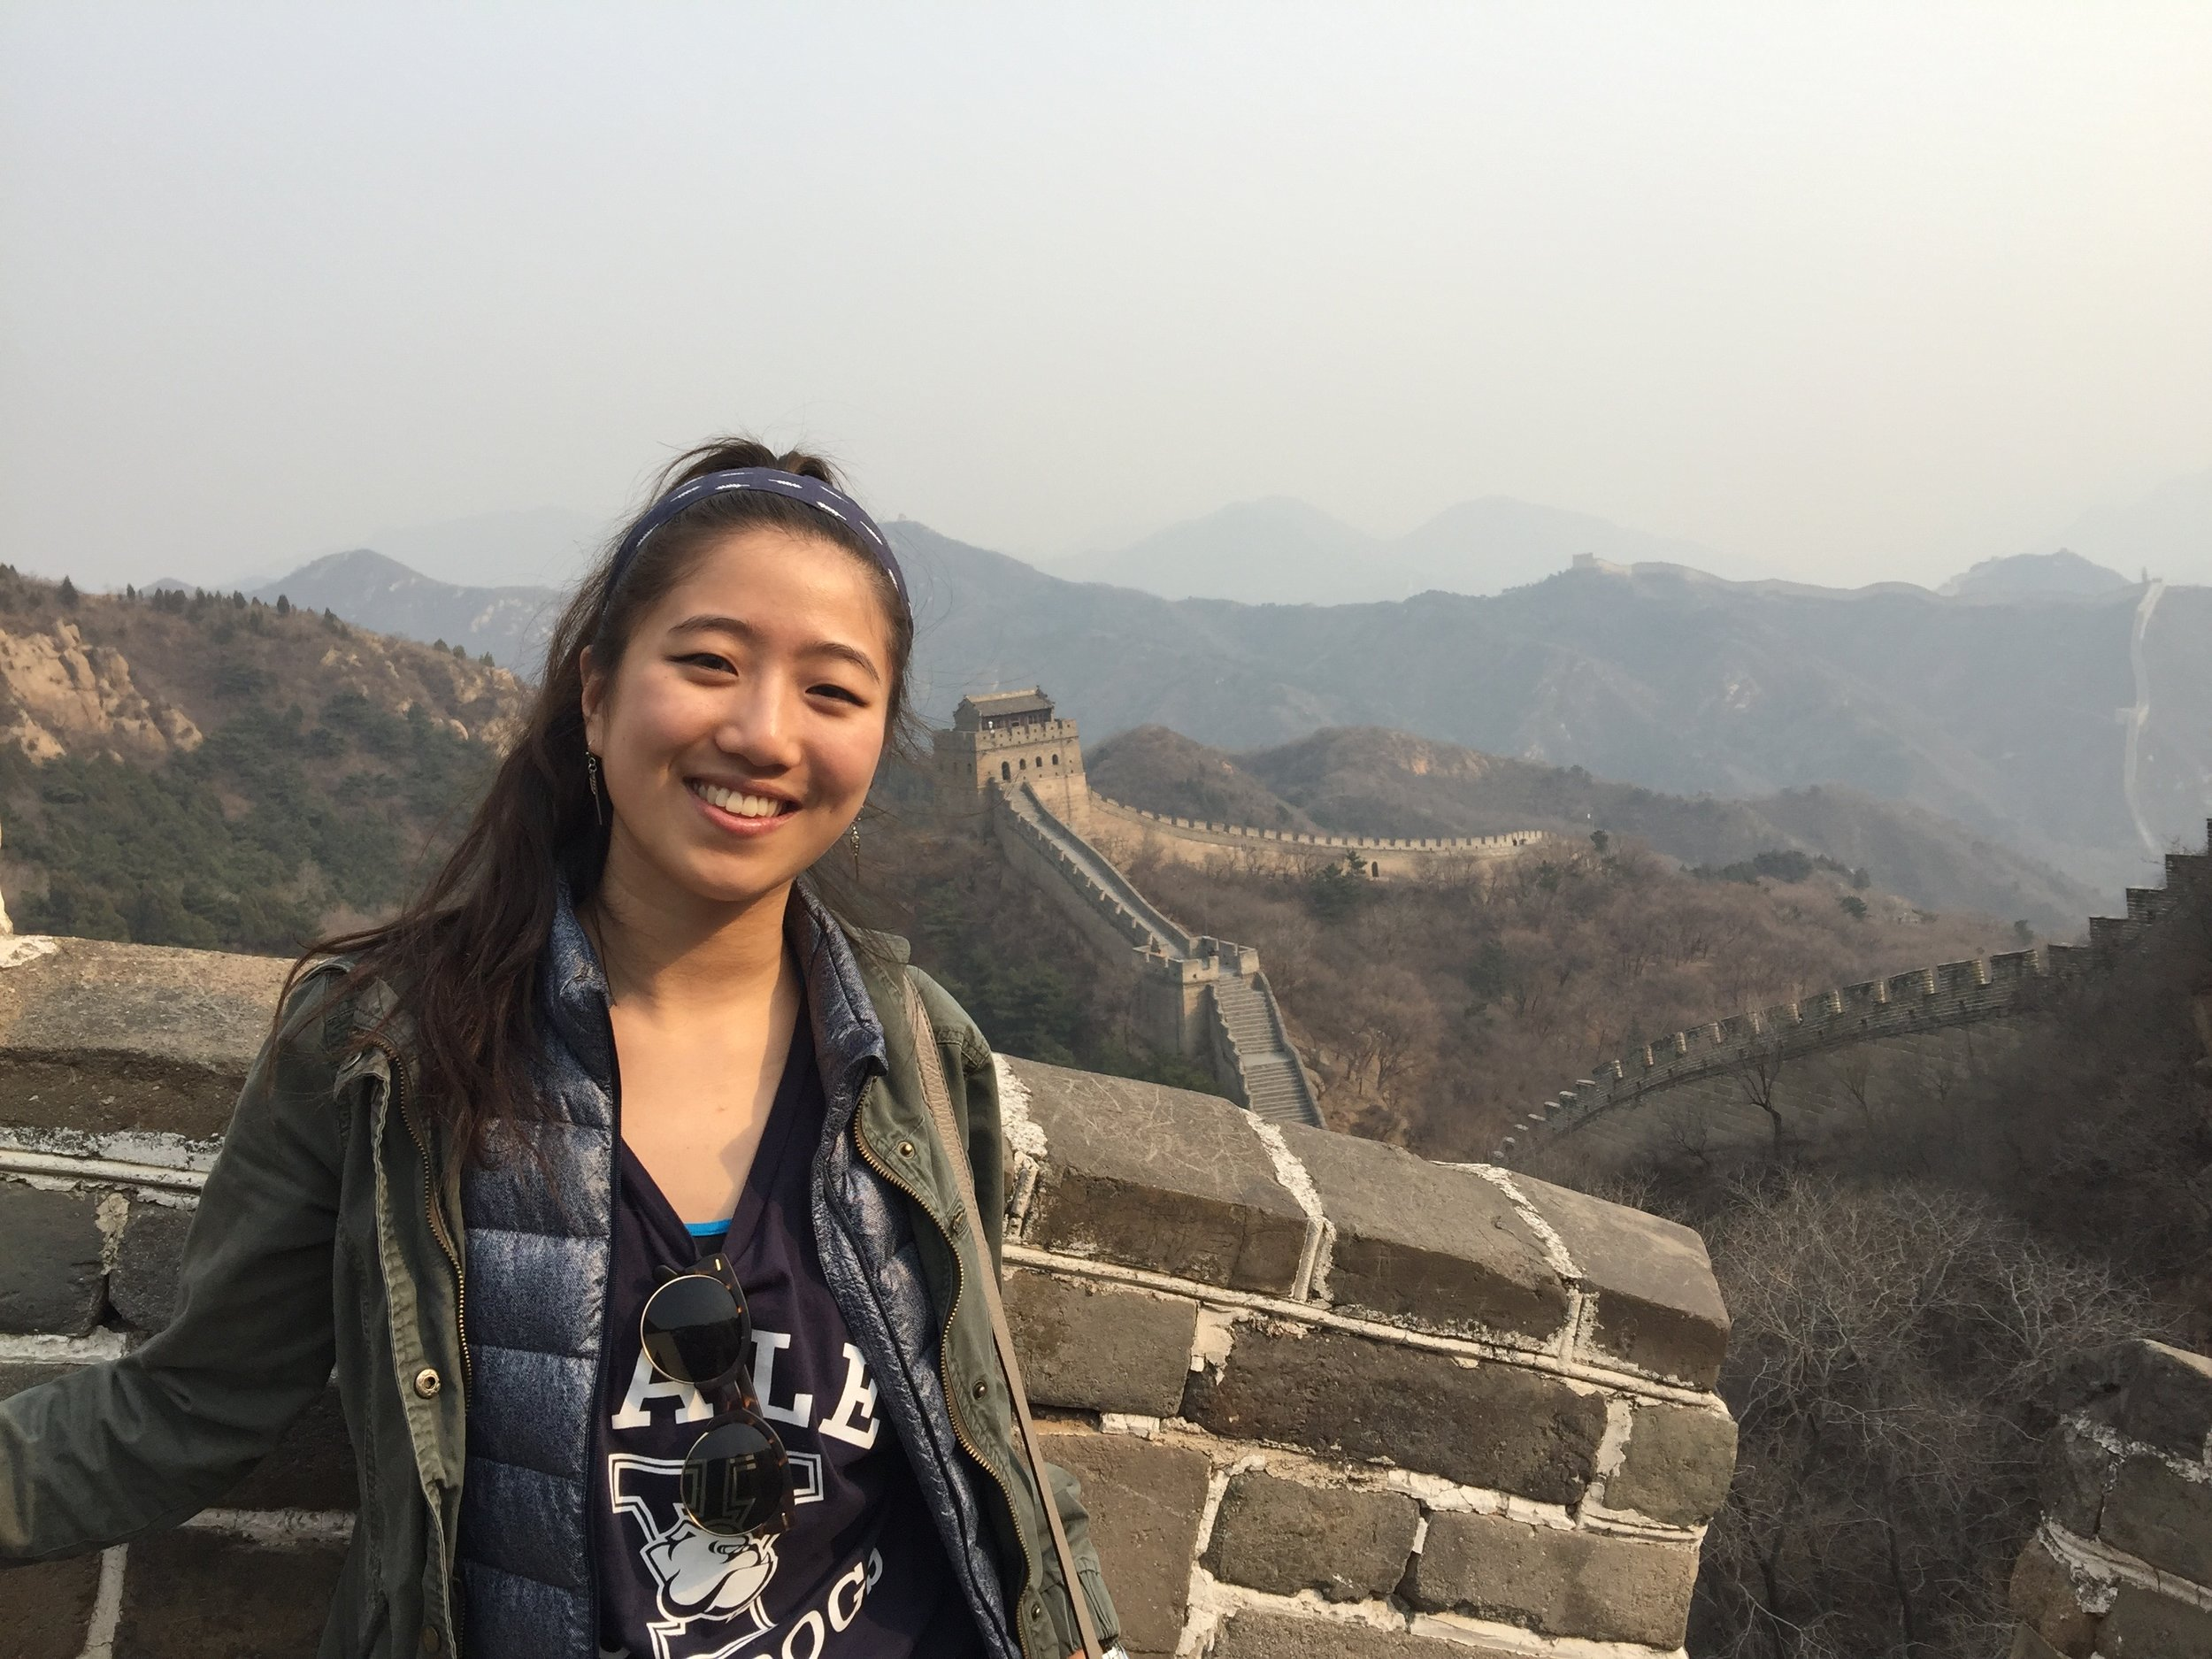 """Copy of <span style=""""font-weight: bold;"""">Valerie Chen</span></br>Senior Advisor, Outreach Chair</br><a href=""""valerie.chen@yale.edu"""">valerie.chen@yale.edu</a>"""